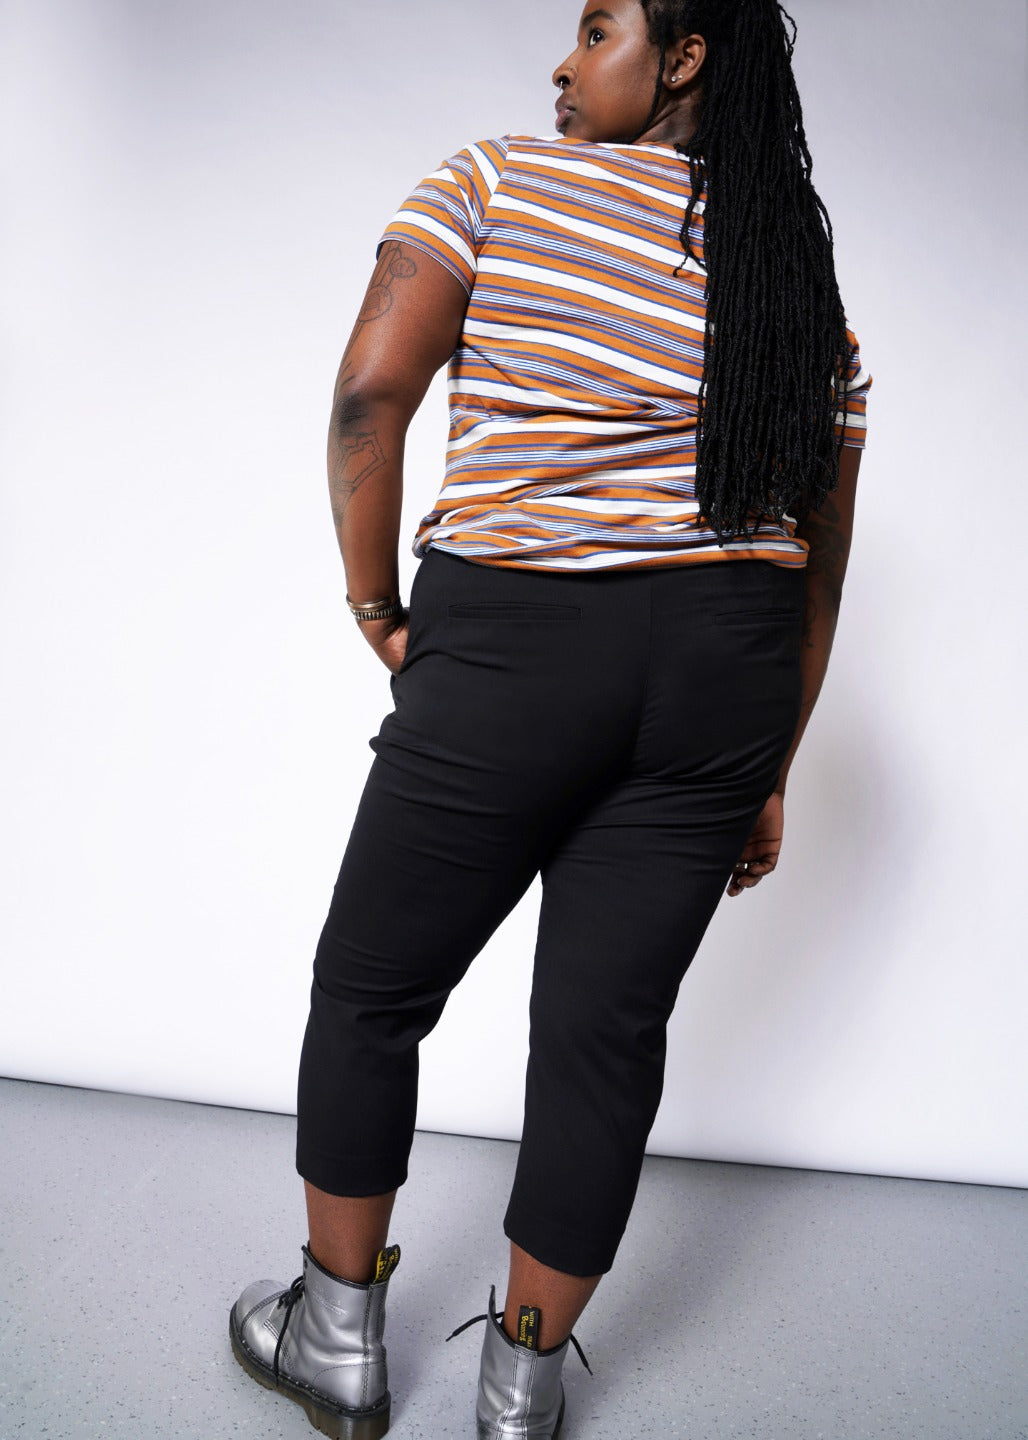 The Empower Slim Crop Pant